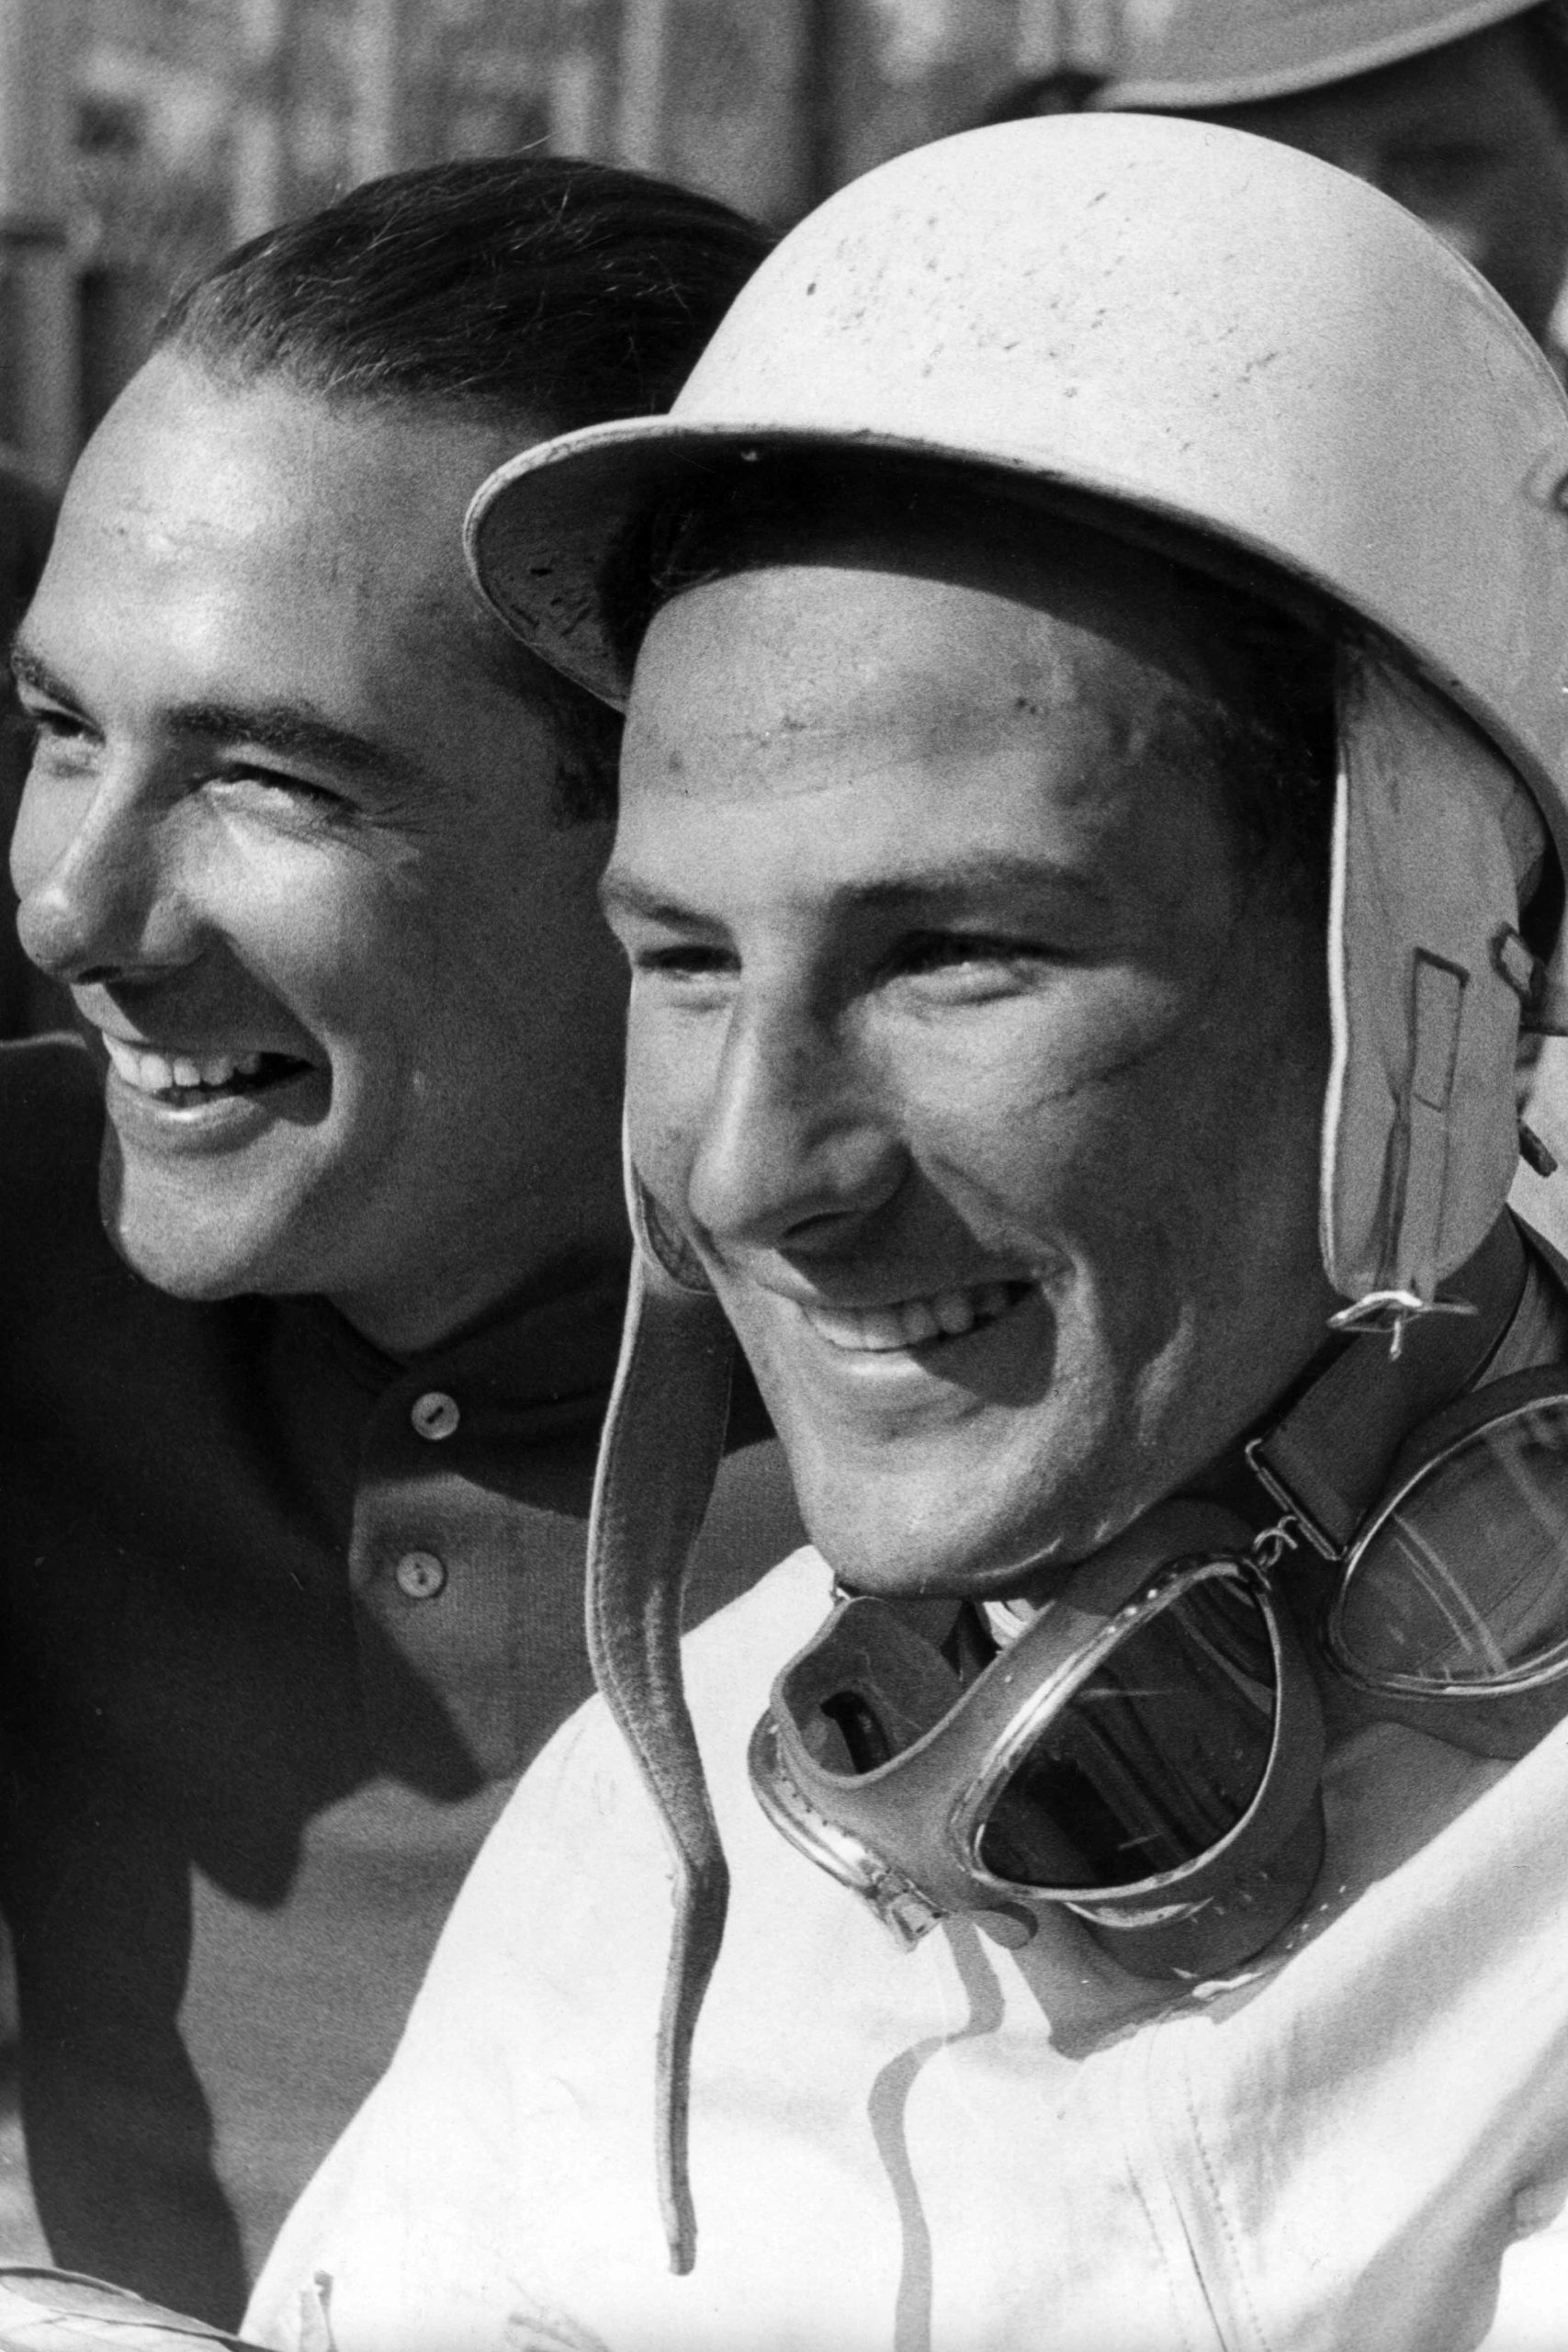 Stirling-Moss-with-Jean-Behra-at-the-1956-German-Grand-Prix